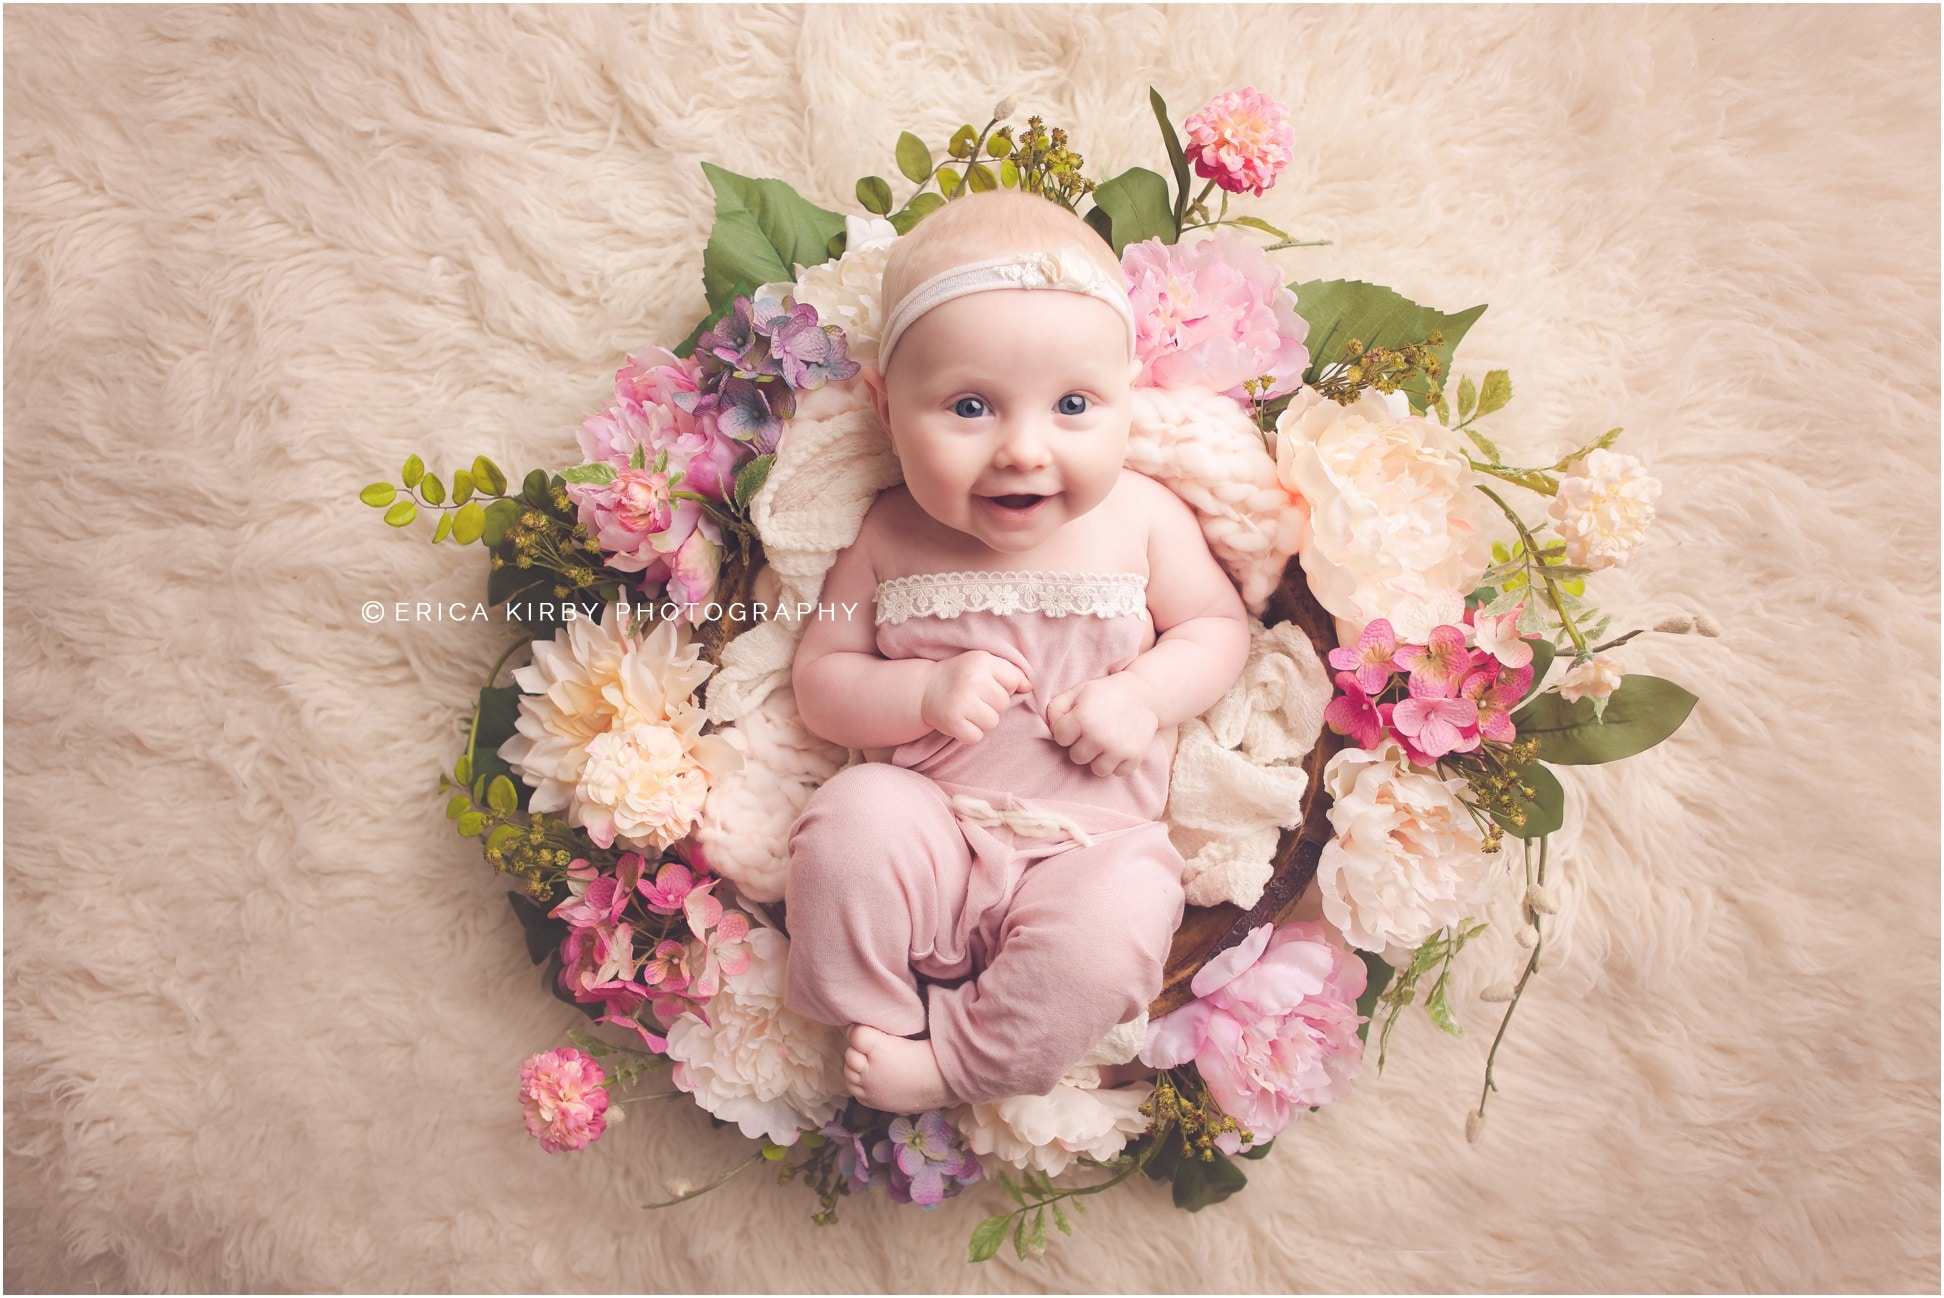 Northwest arkansas baby photographer 3 months old